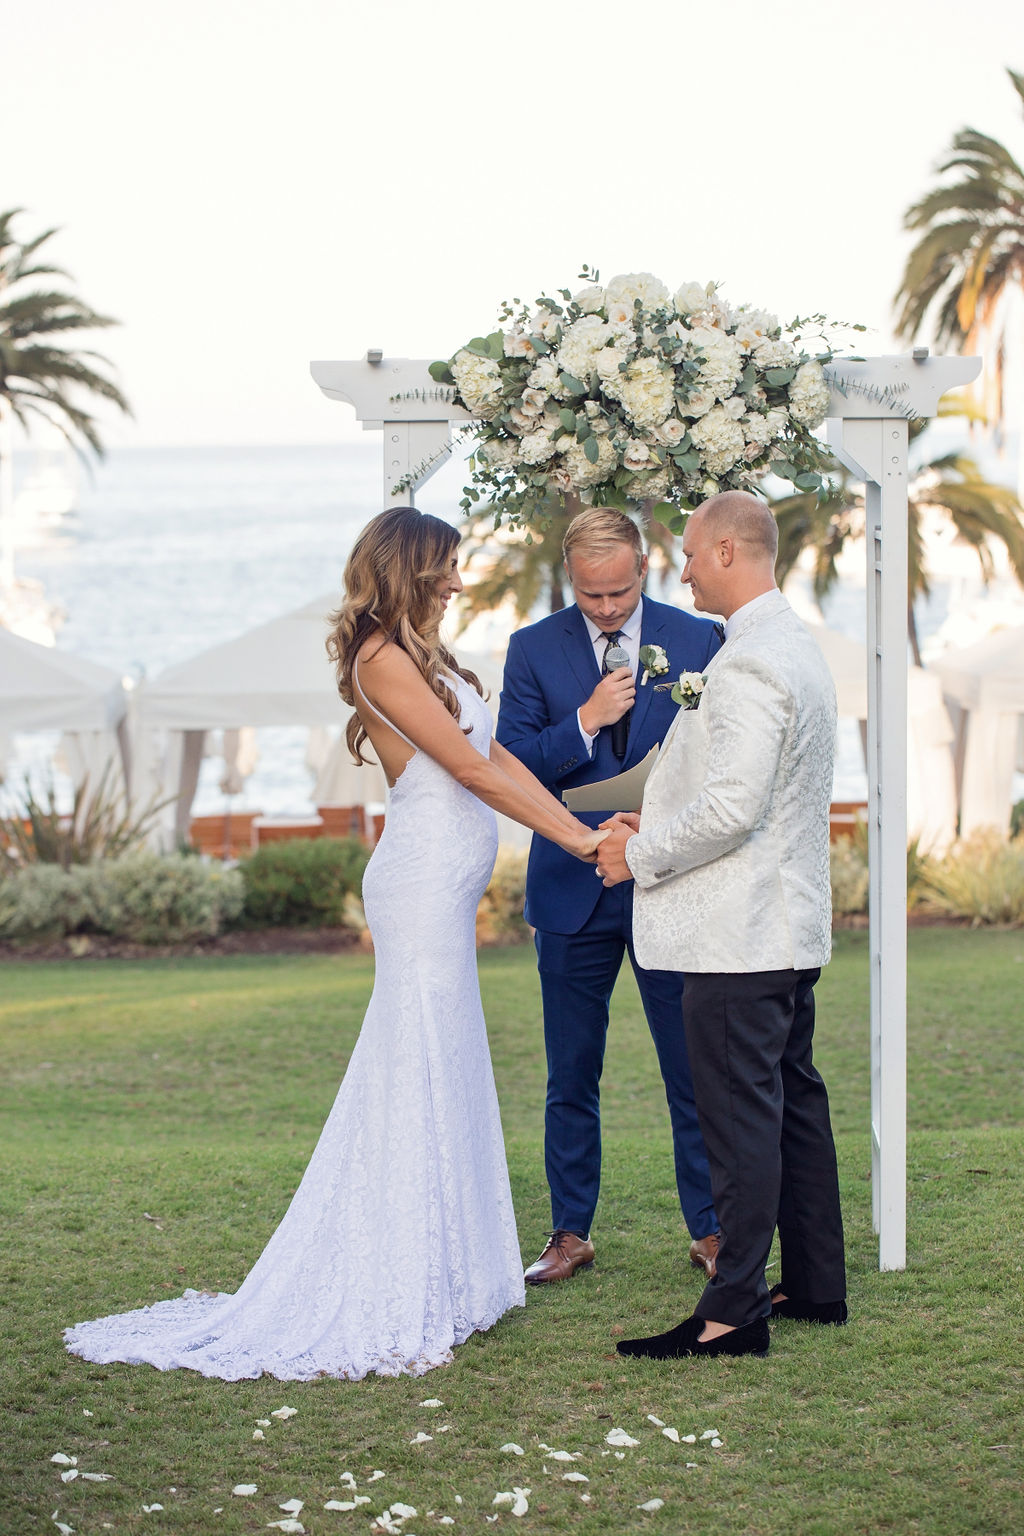 catalina island wedding. Descanso beach club. Descanso beach club wedding. Avalon wedding